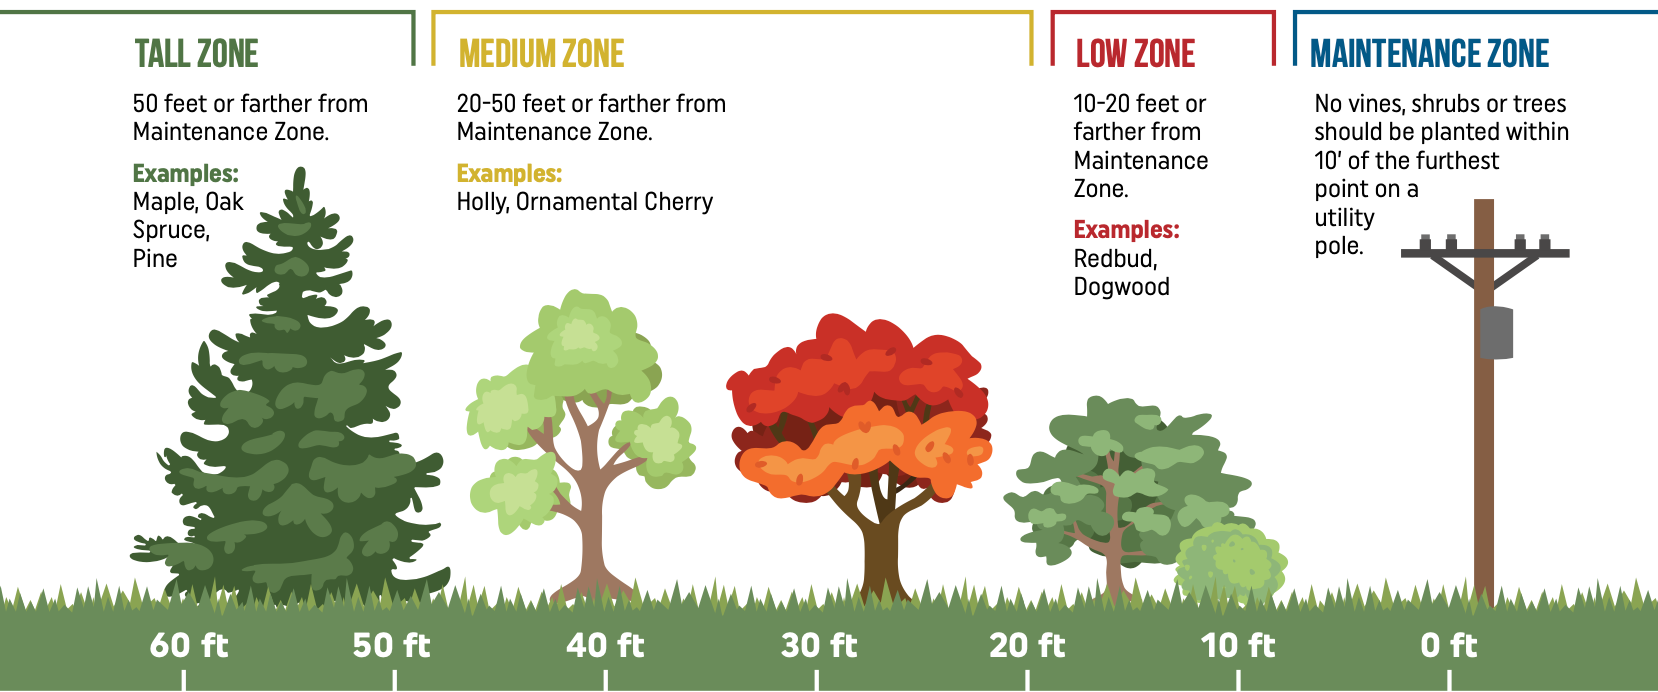 Tall Zone: 50 feet or farther from Maintenance Zone. Examples: Maple, Oak Spruce, Pine. Medium Zone: 20-50 feet or farther from Maintenance Zone. Examples: Holly, Ornamental Cherry. Low Zone: 10-20 feet or farther from Maintenance Zone. Examples: Redbud, Dogwood. Maintenance Zone: No vines, shrubs or trees should be planted within 10' of the furthest point on a utility pole.